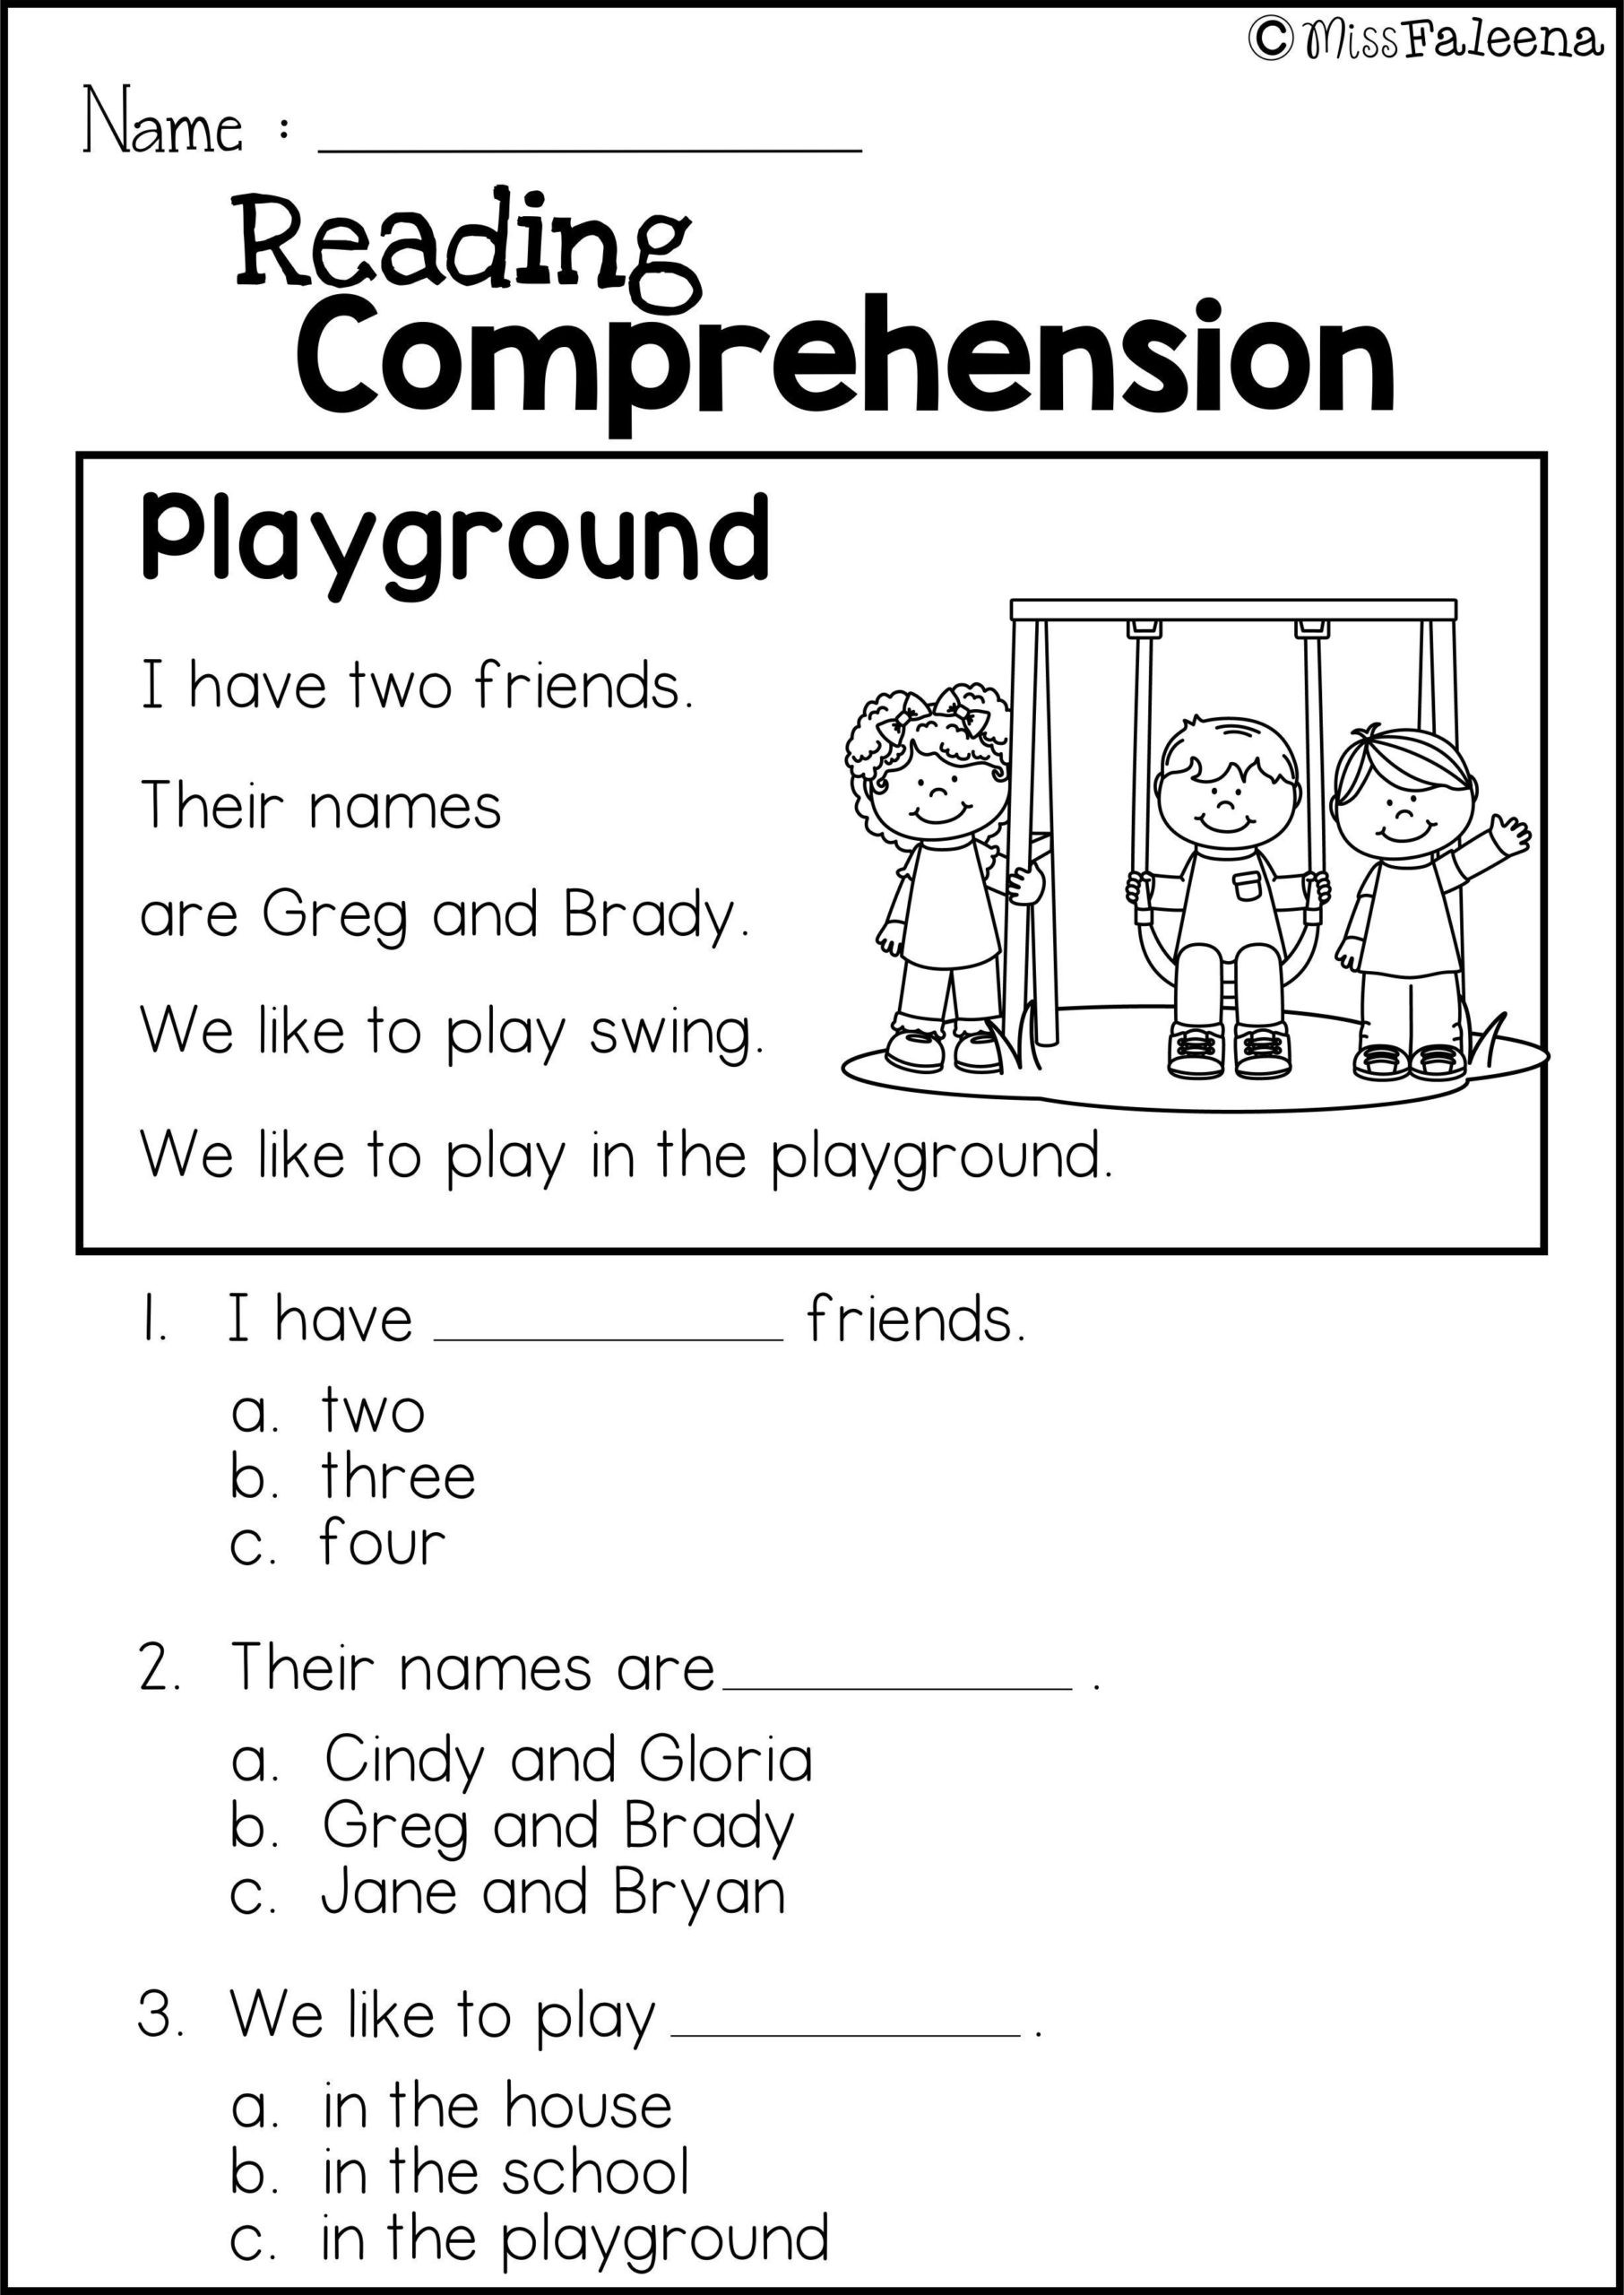 Free 2nd Grade Comprehension Worksheets Math Worksheet Printable Reading Prehension for Second